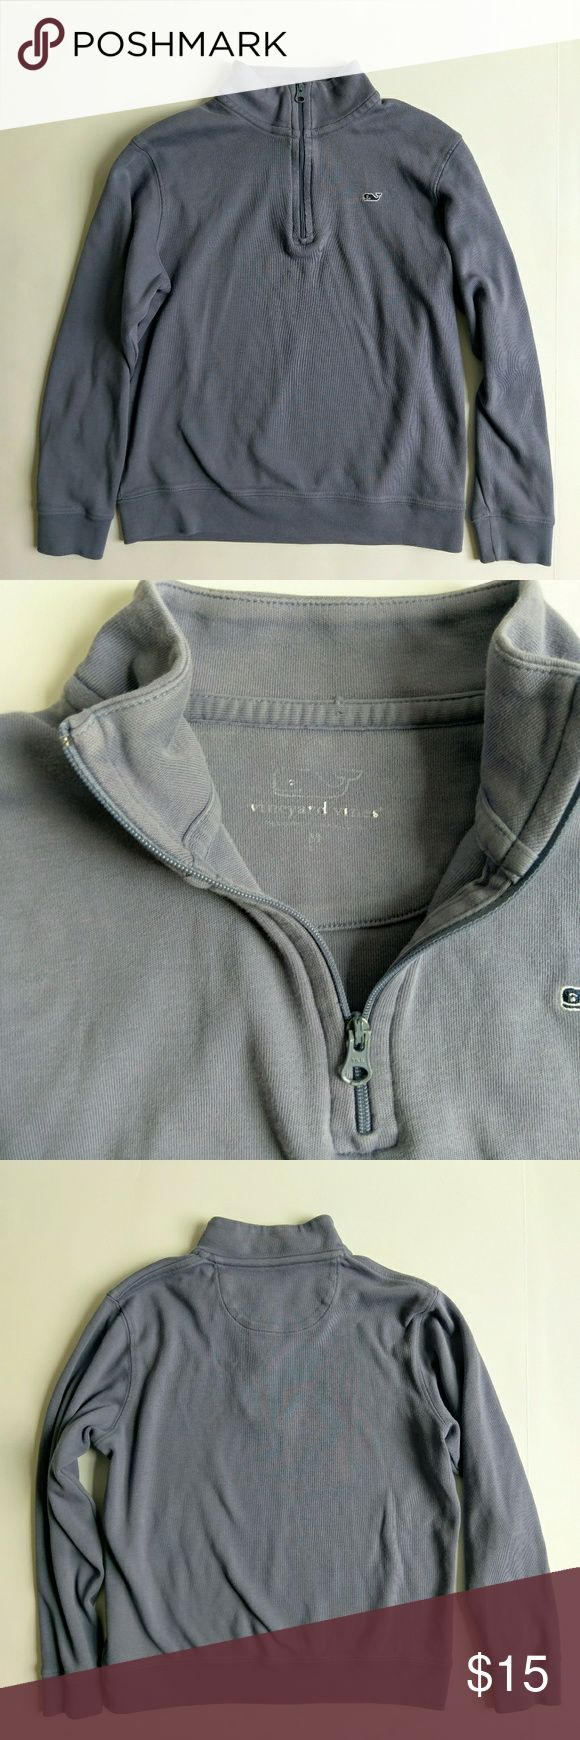 Vineyard Vines boys pullover sweatshirt In great condition and great quality   Good for fall layering   All reasonable offers considered! Vineyard Vines Shirts & Tops Sweatshirts & Hoodies